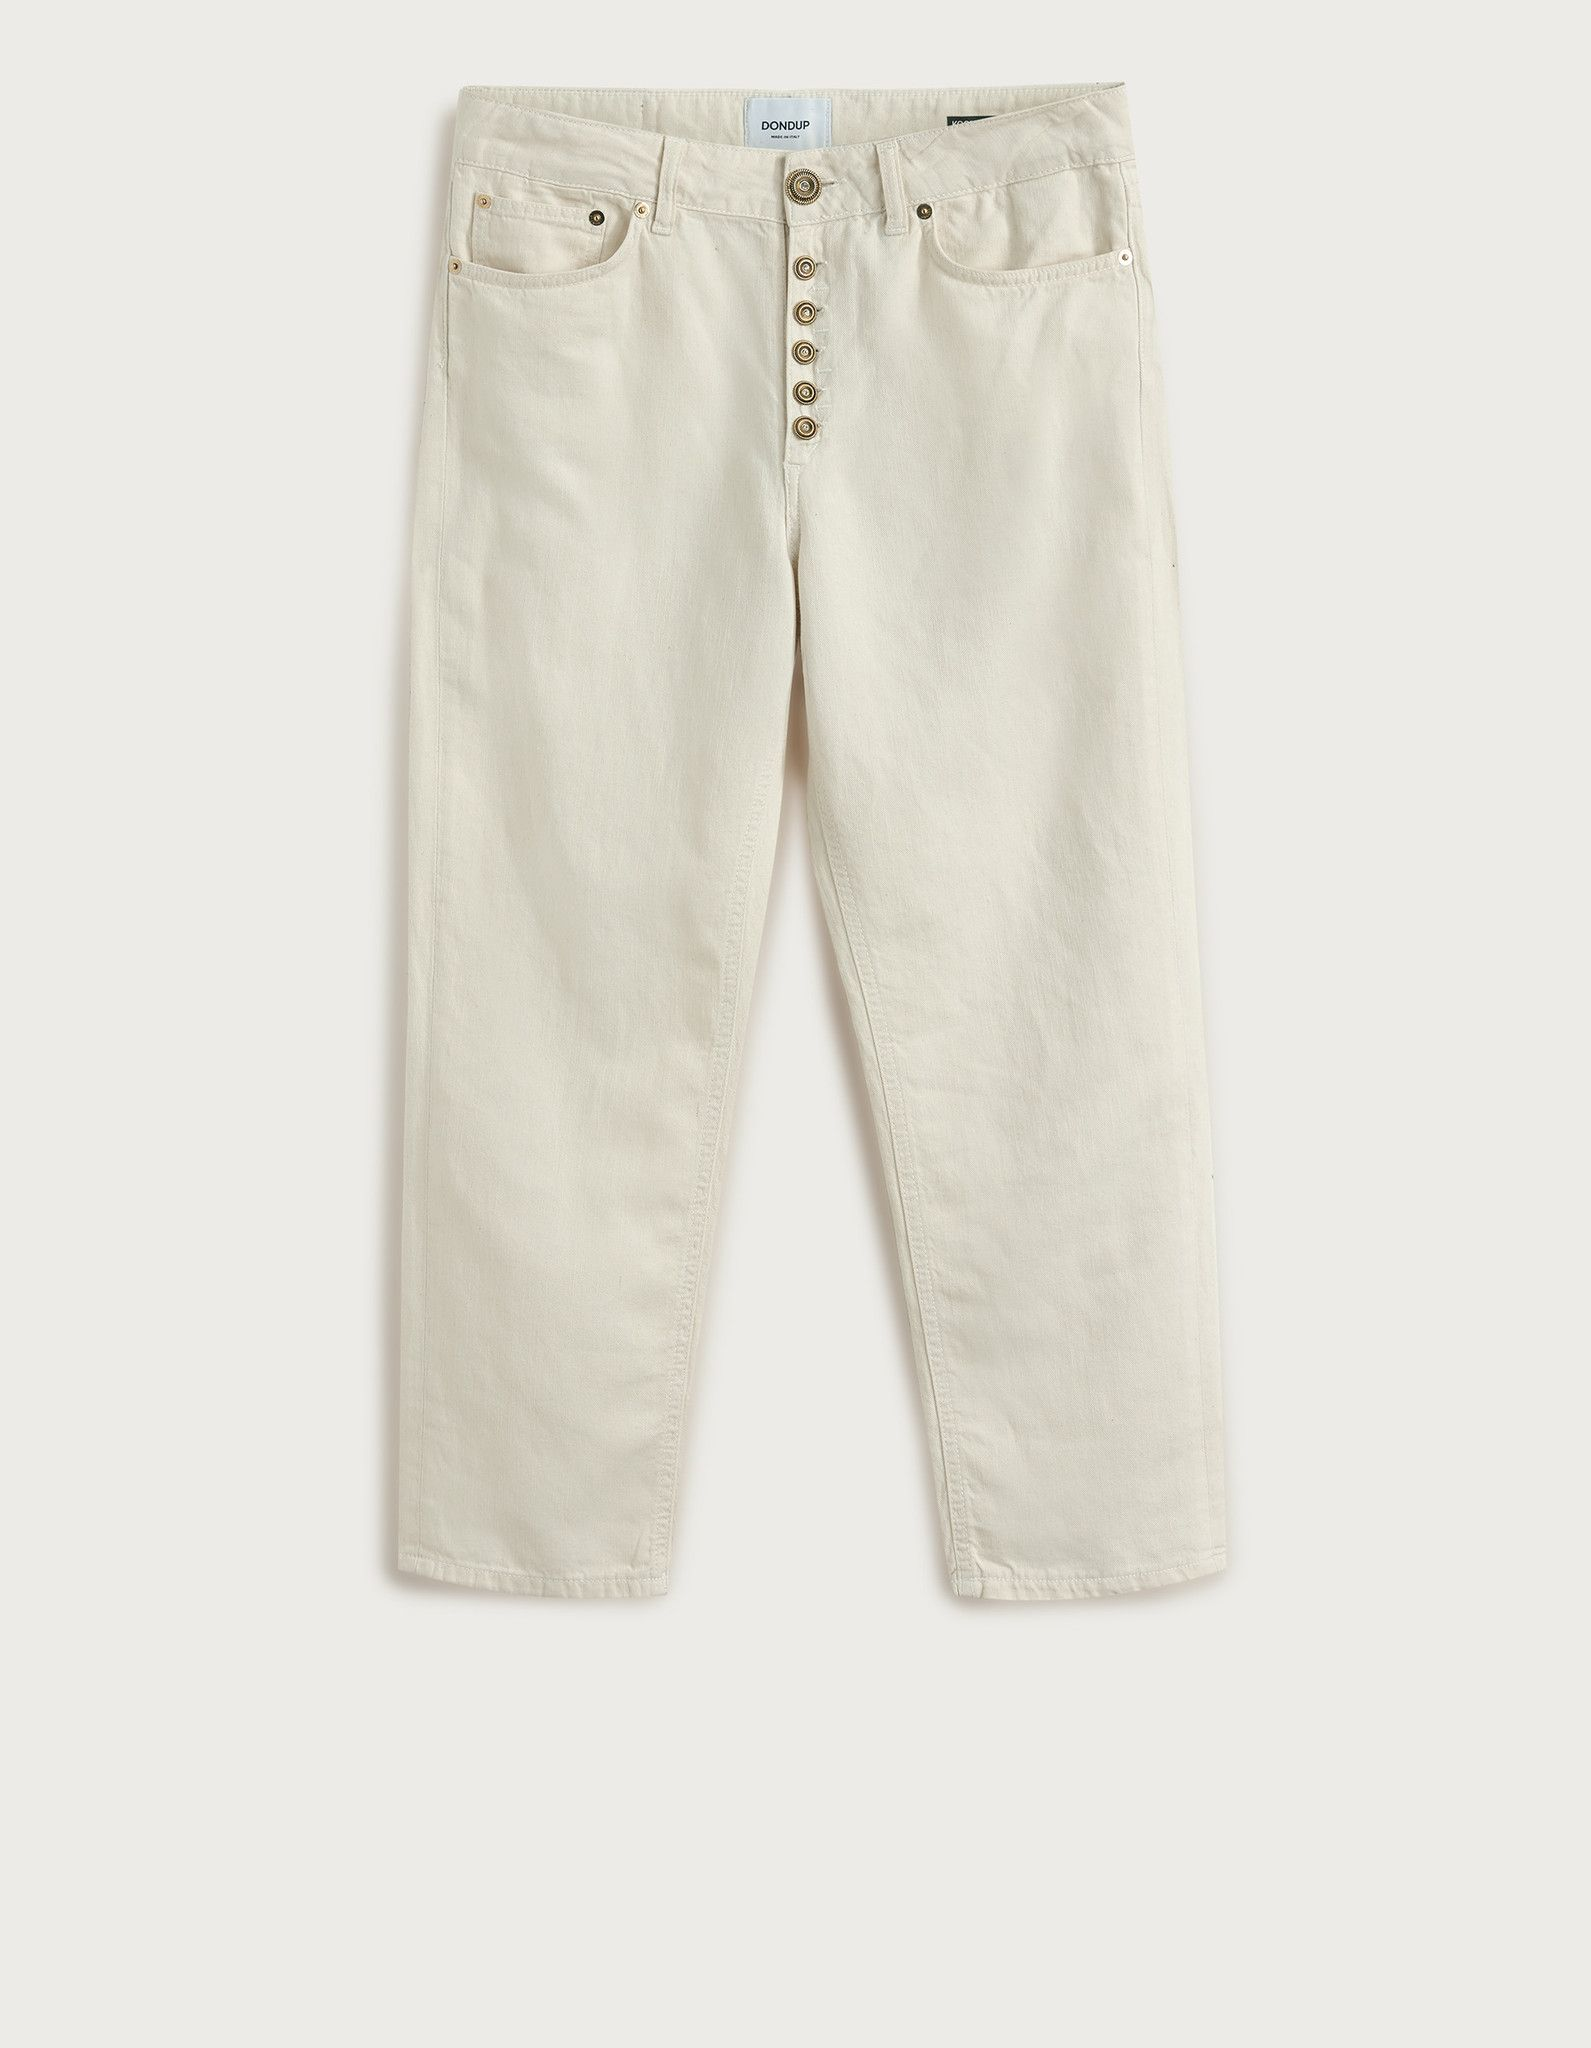 DONDUP KOONS LOOSE JEANS